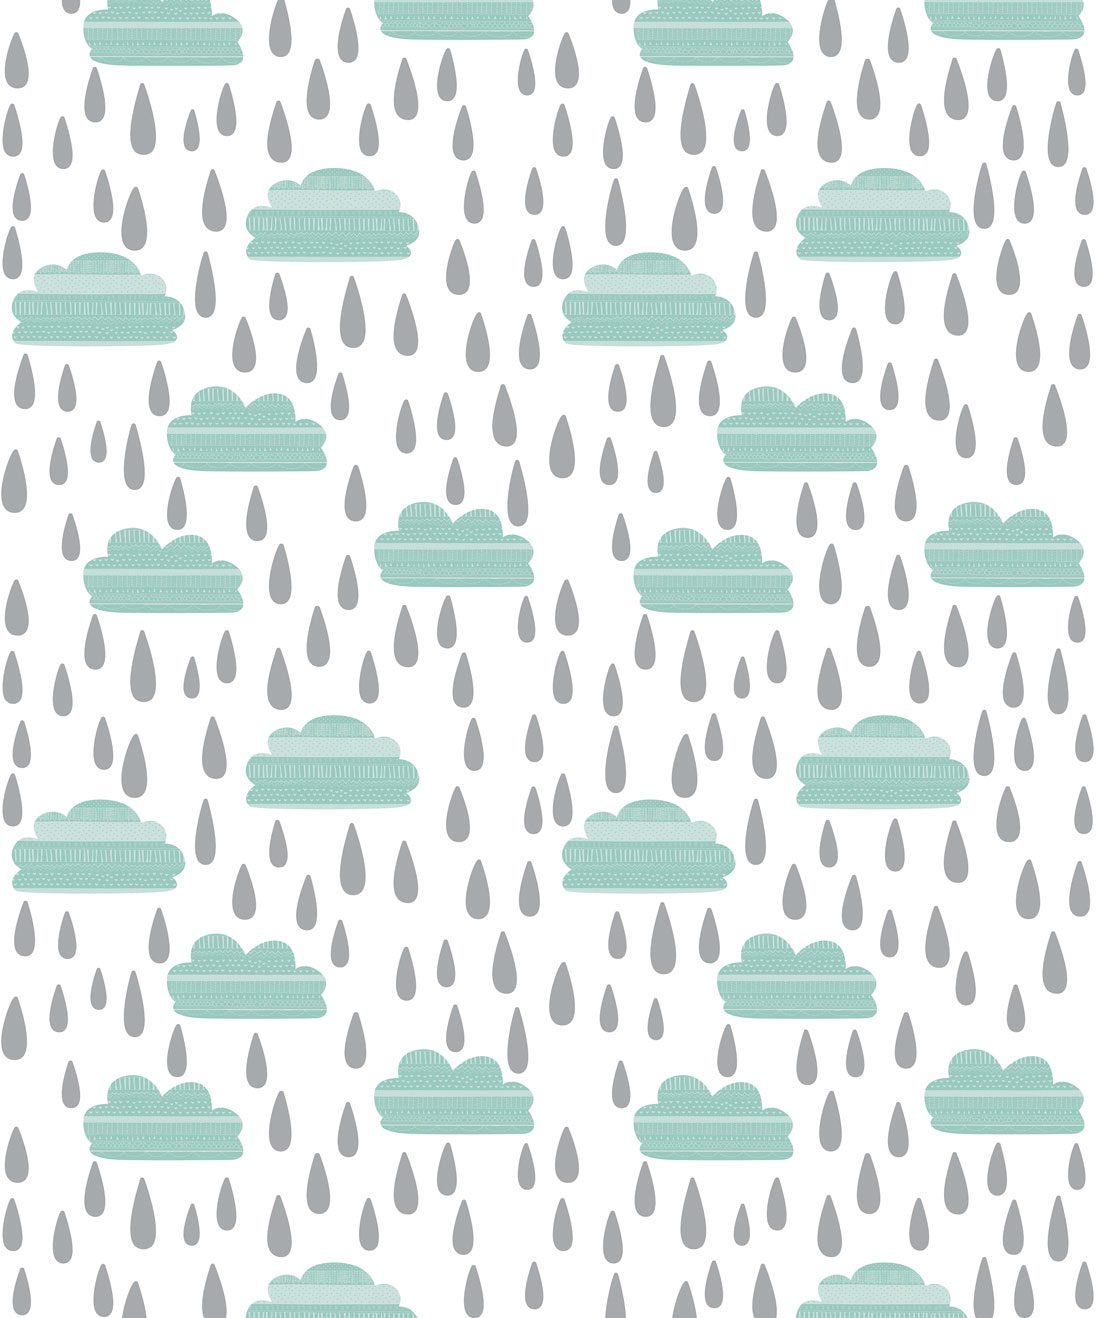 Rainy Days Wallpaper